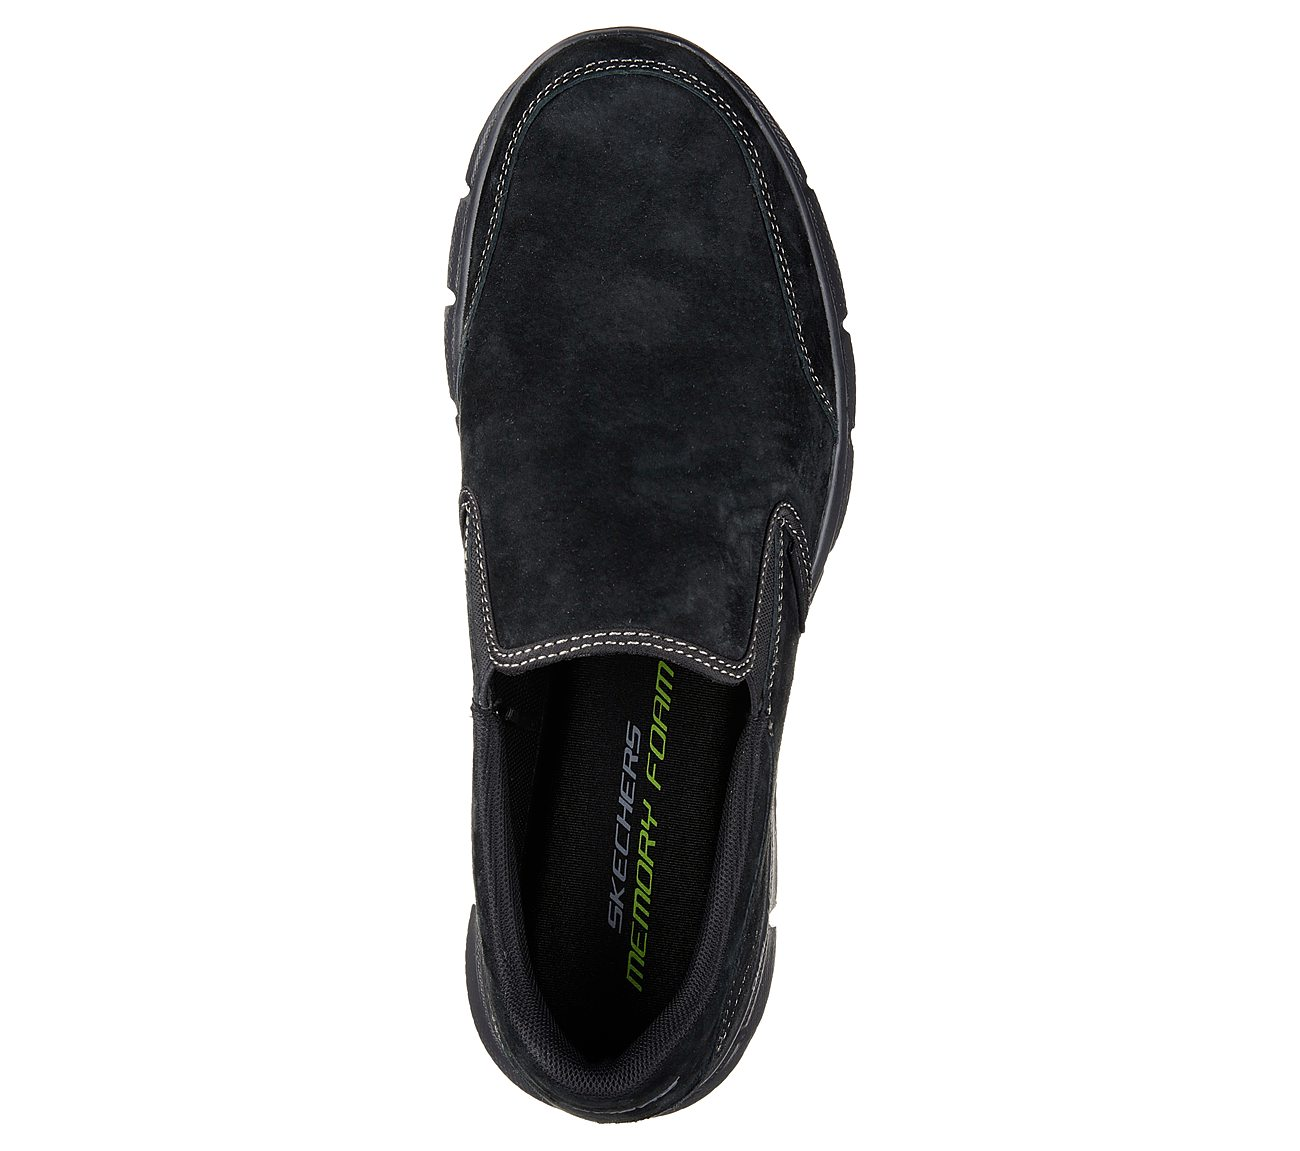 Buy 00 75 Game Sport Mind Equalizer € Shoes Only Skechers HAw8THqr0